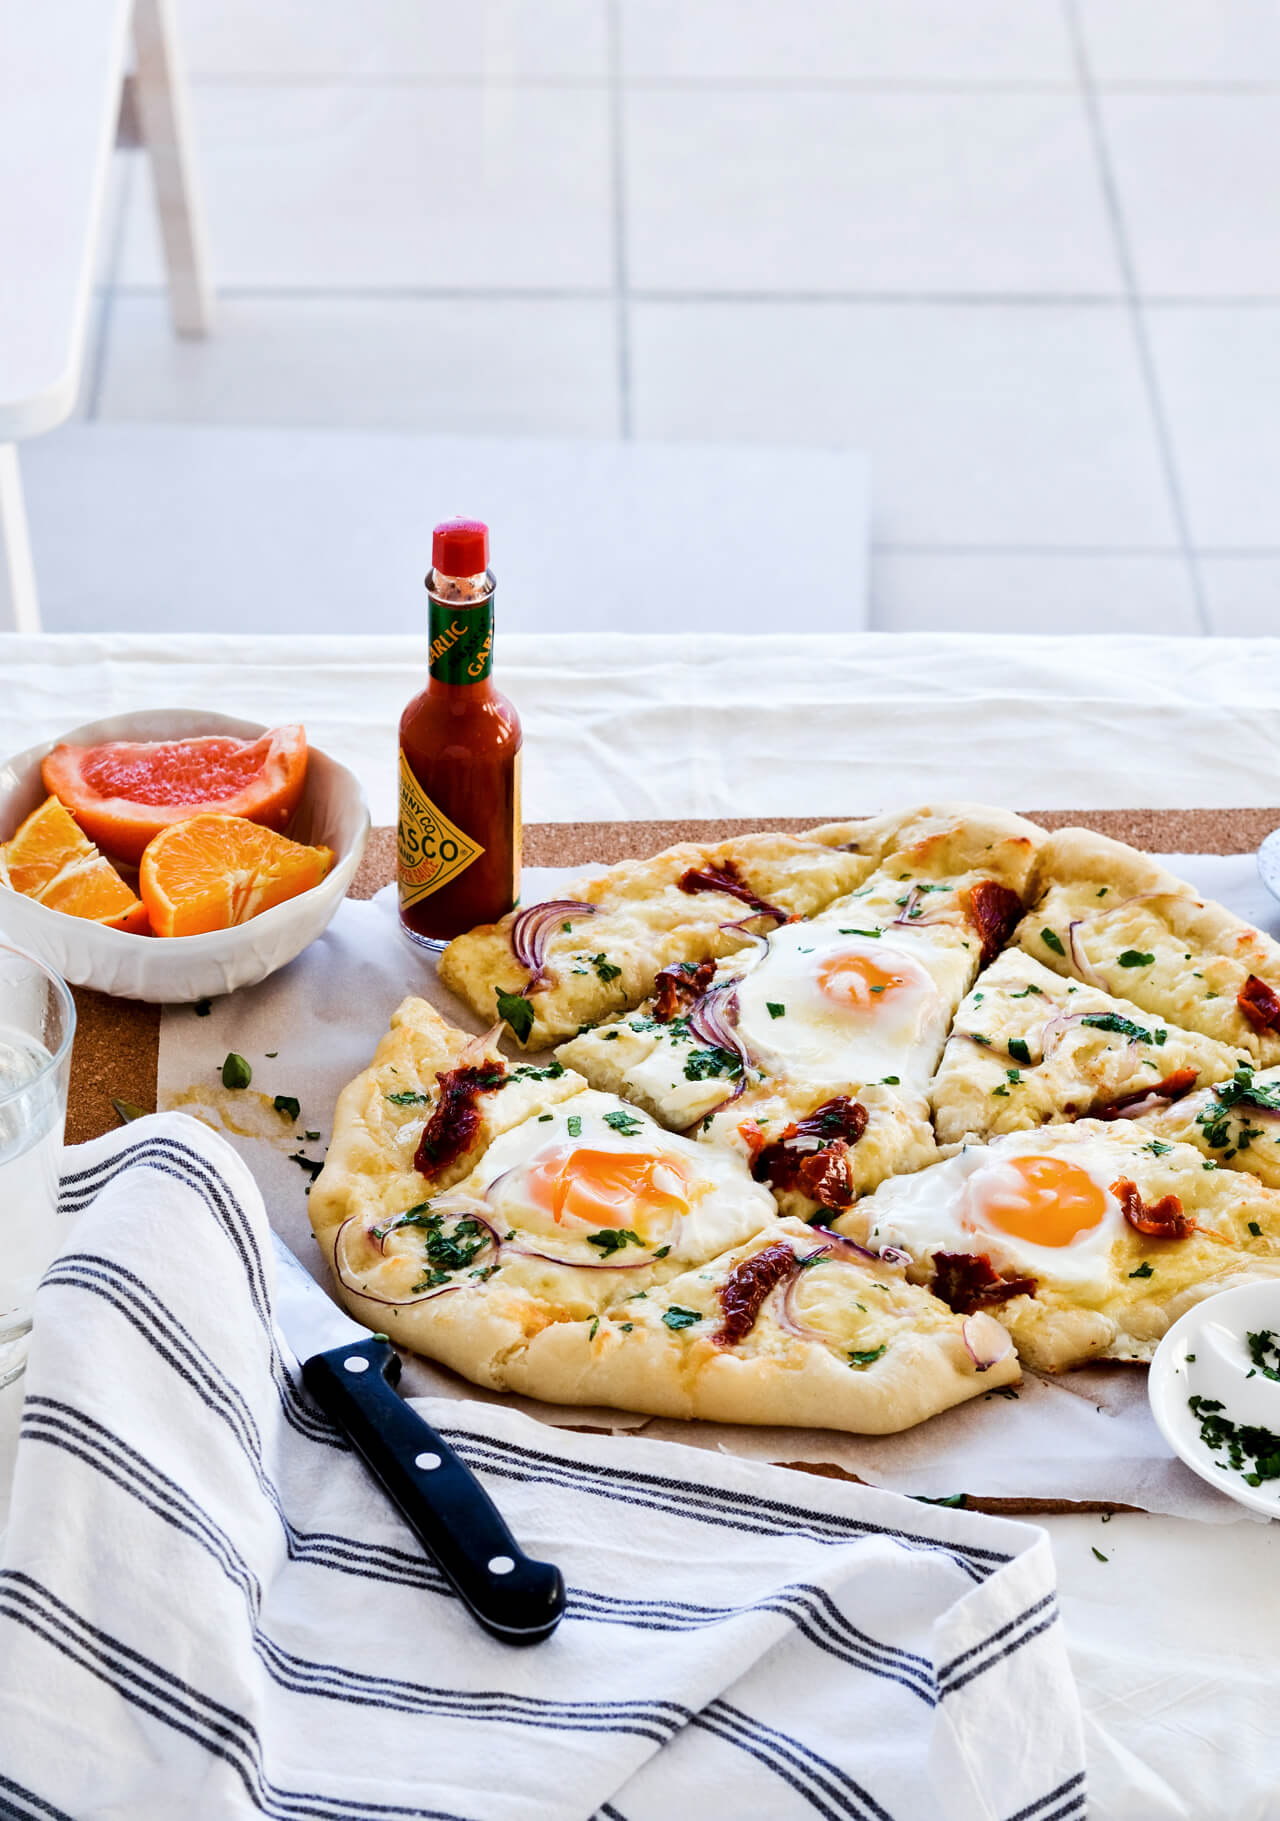 Easy sun dried tomato onion breakfast pizza with eggs, easy brunch recipe that is quickly made.